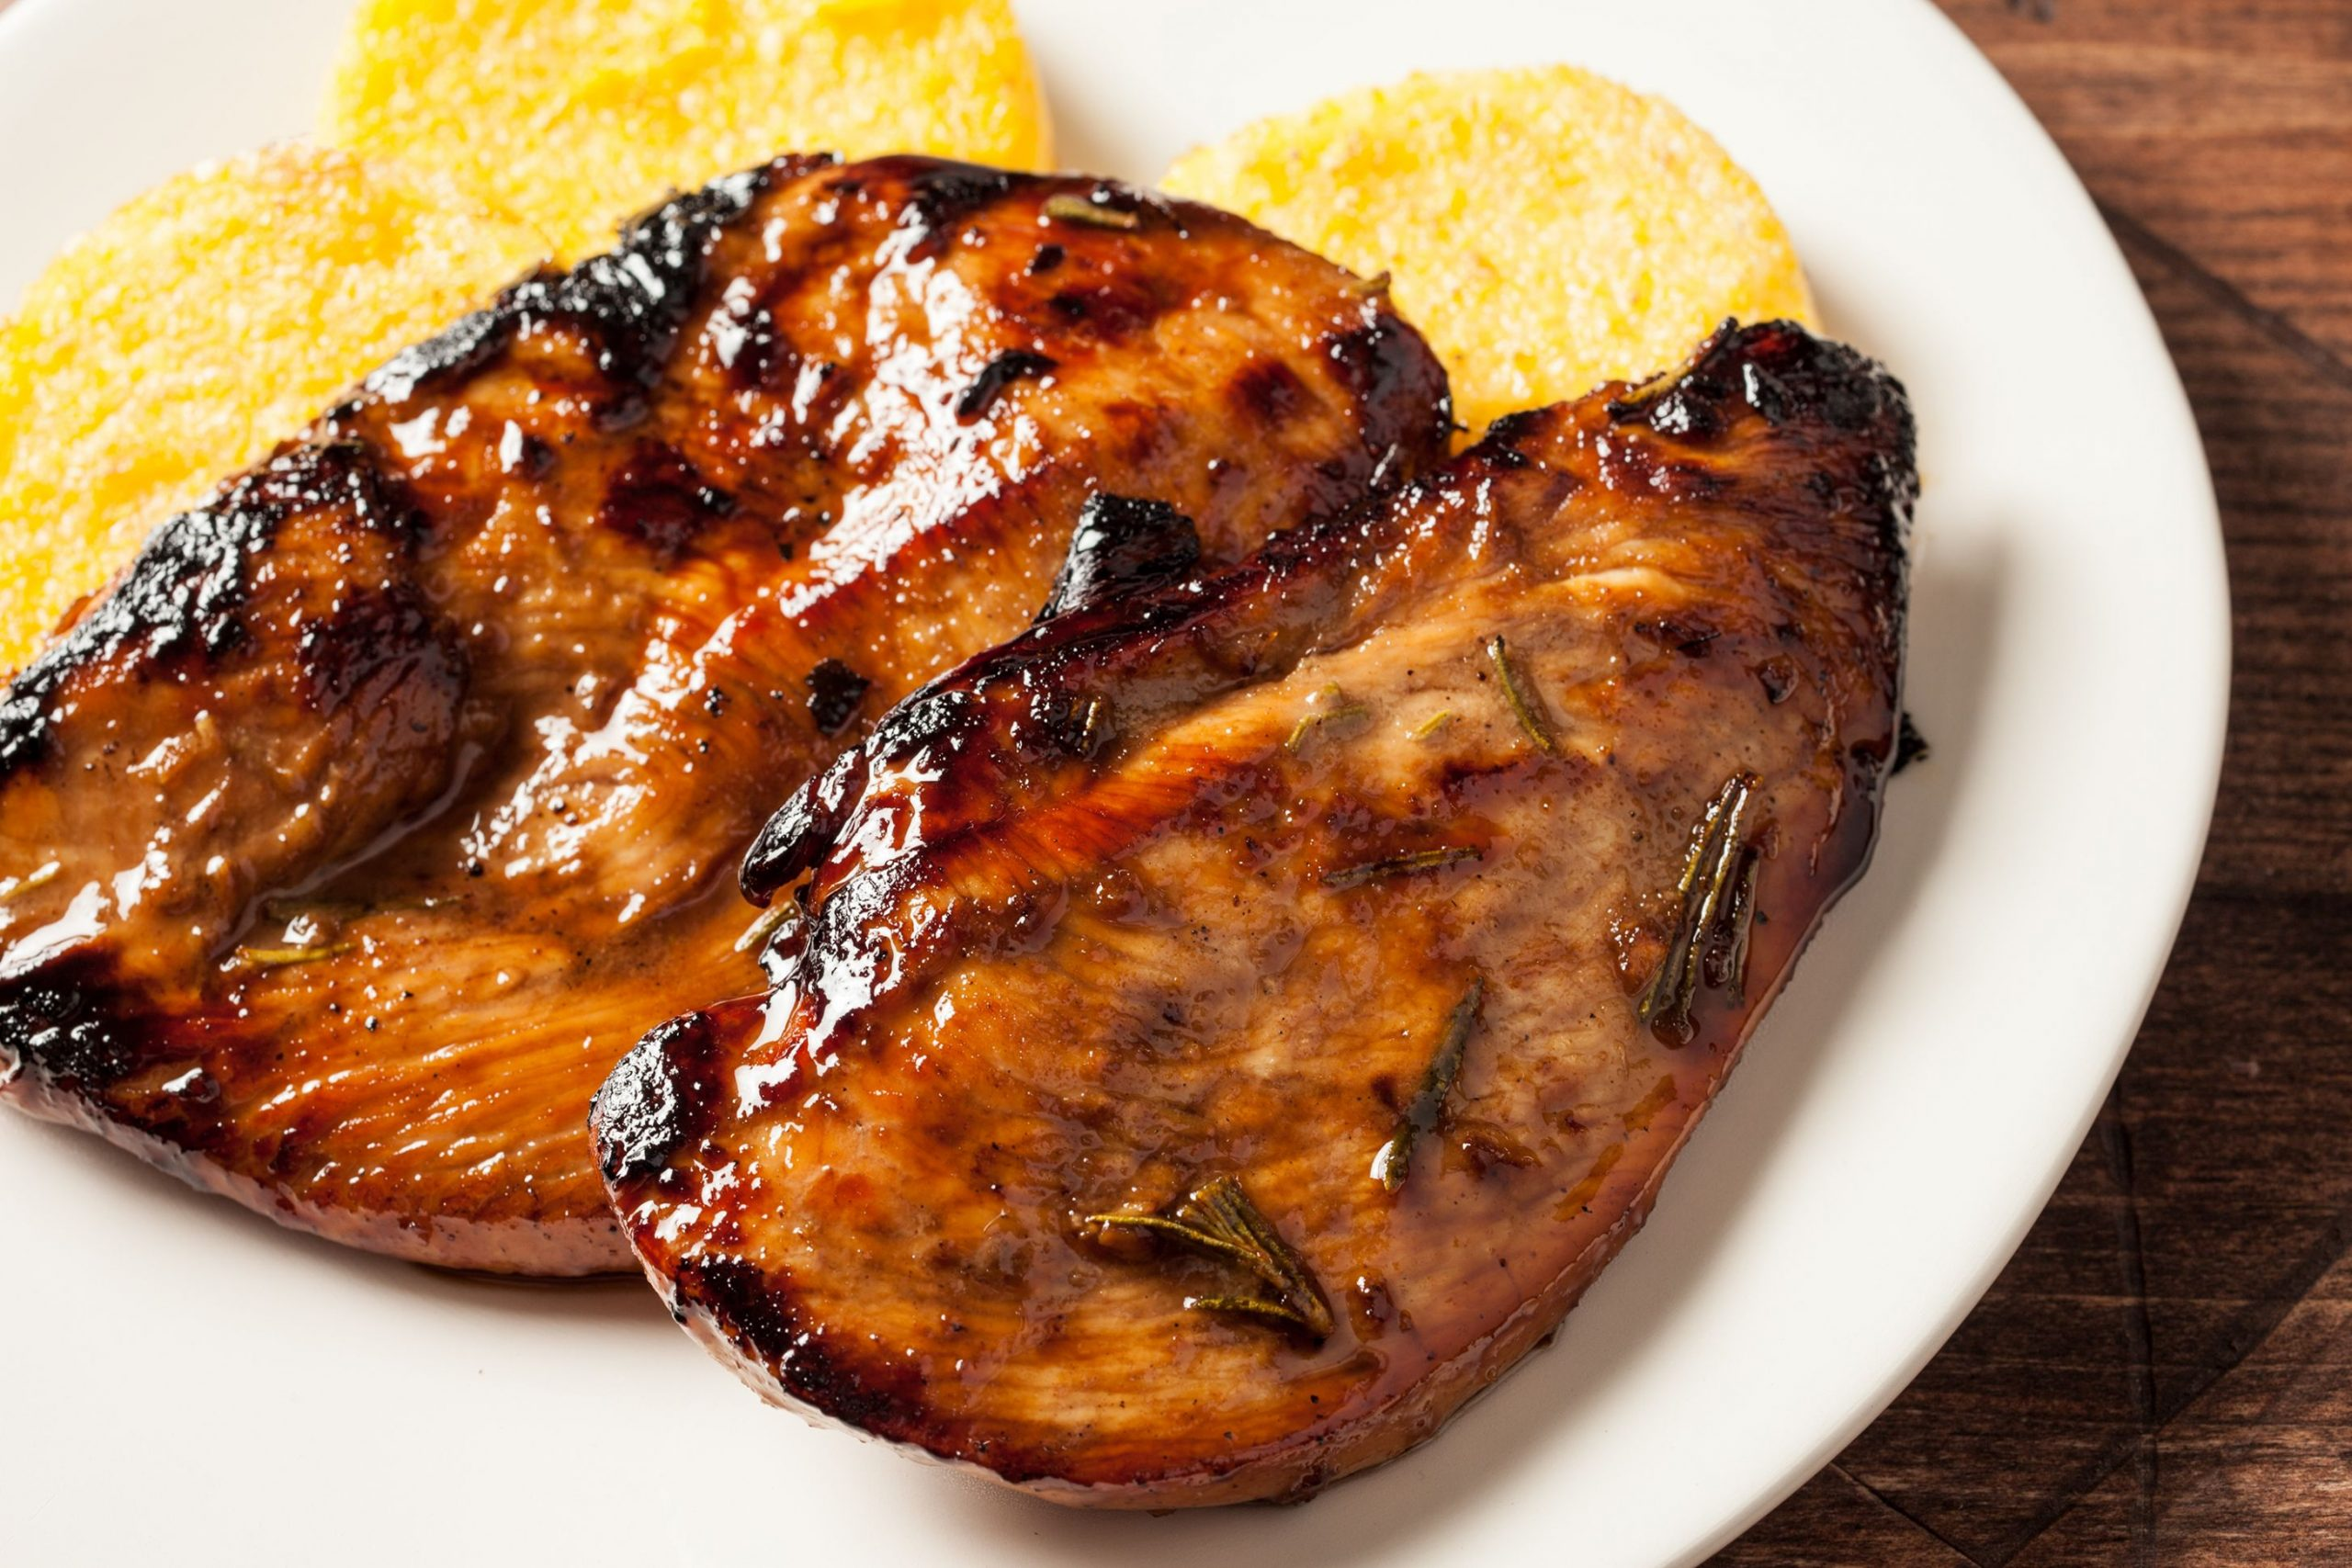 Grilled Chicken Breasts with Balsamic Rosemary Marinade